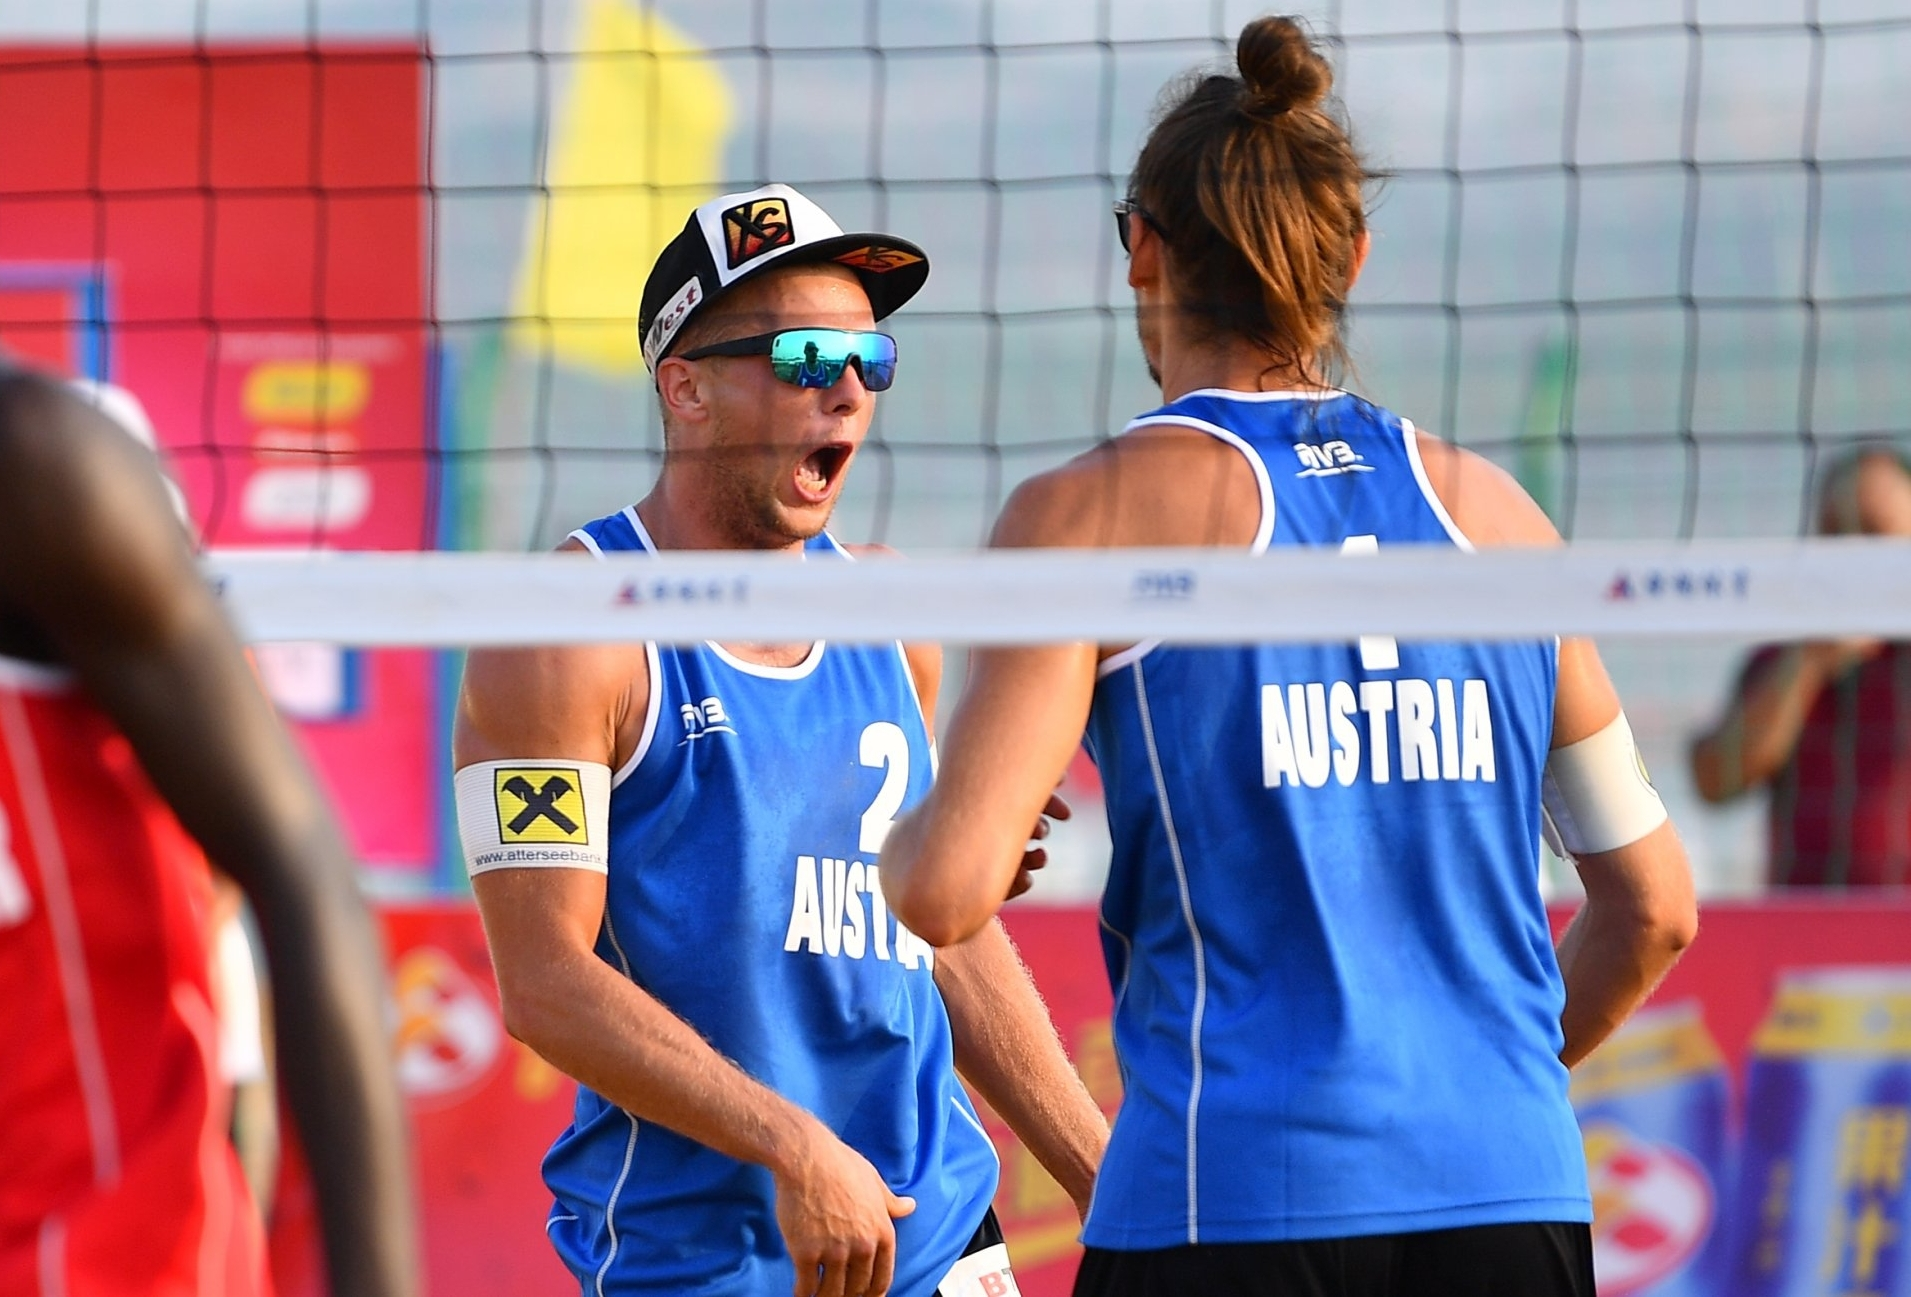 Schnetzer and Müllner win their first medal together as a team in Bangkok. Photocredit: FIVB